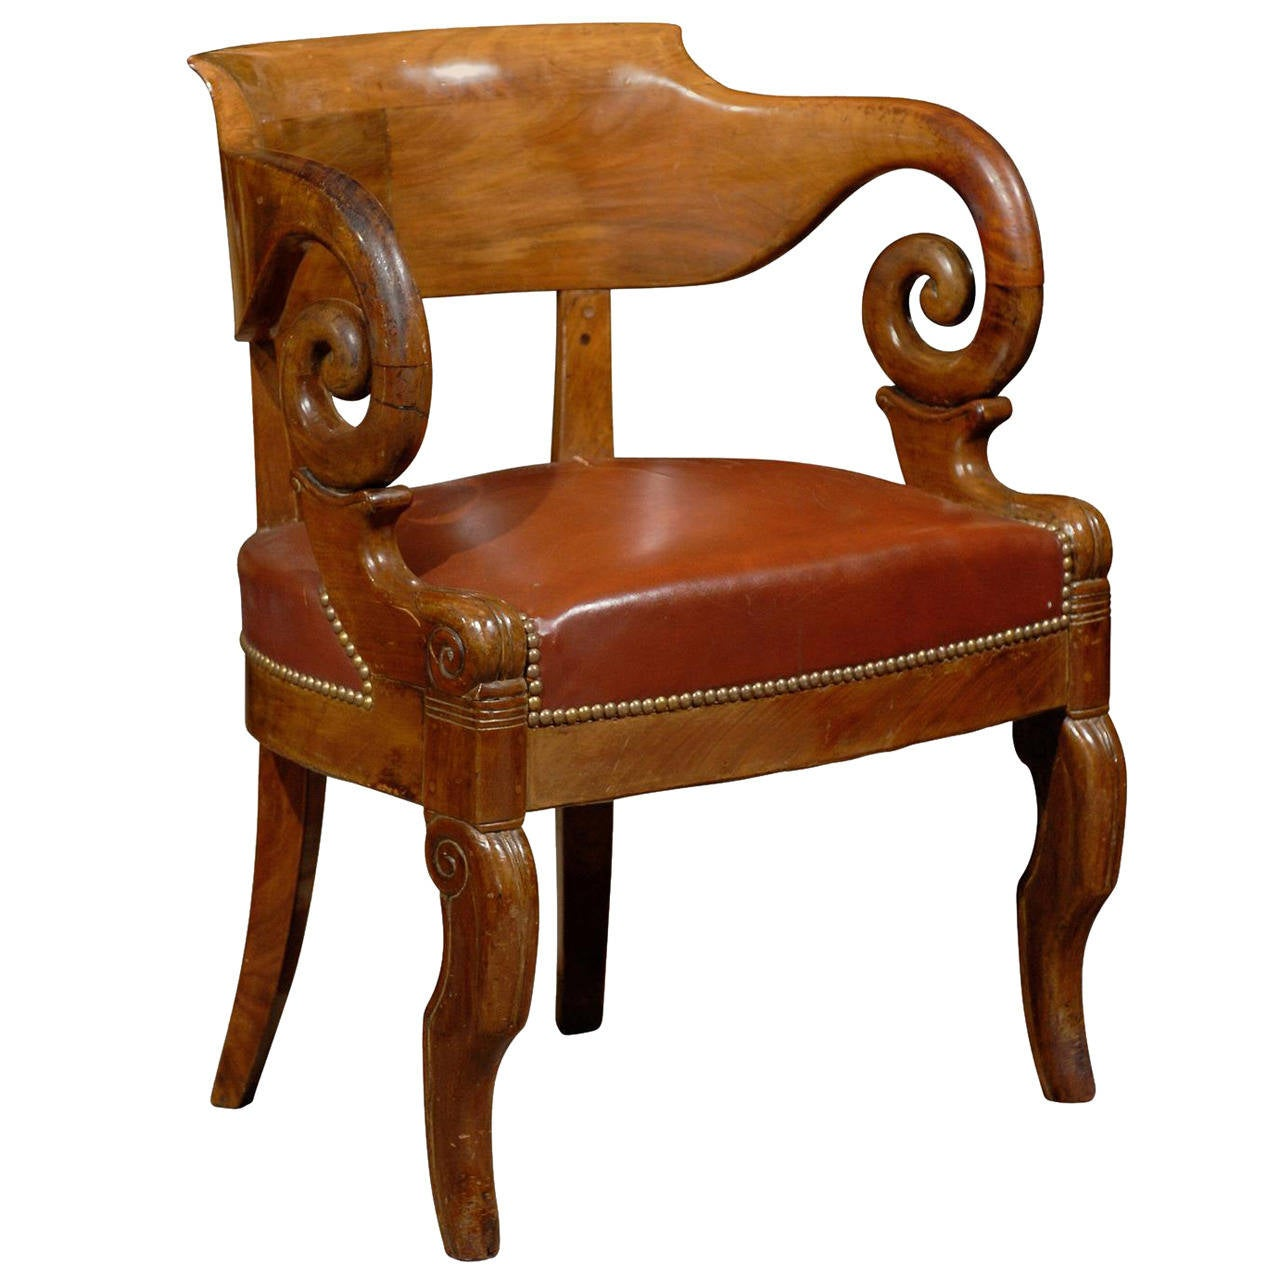 Early 19th Century French Restoration Period Walnut Desk Chair With Leather Seat For